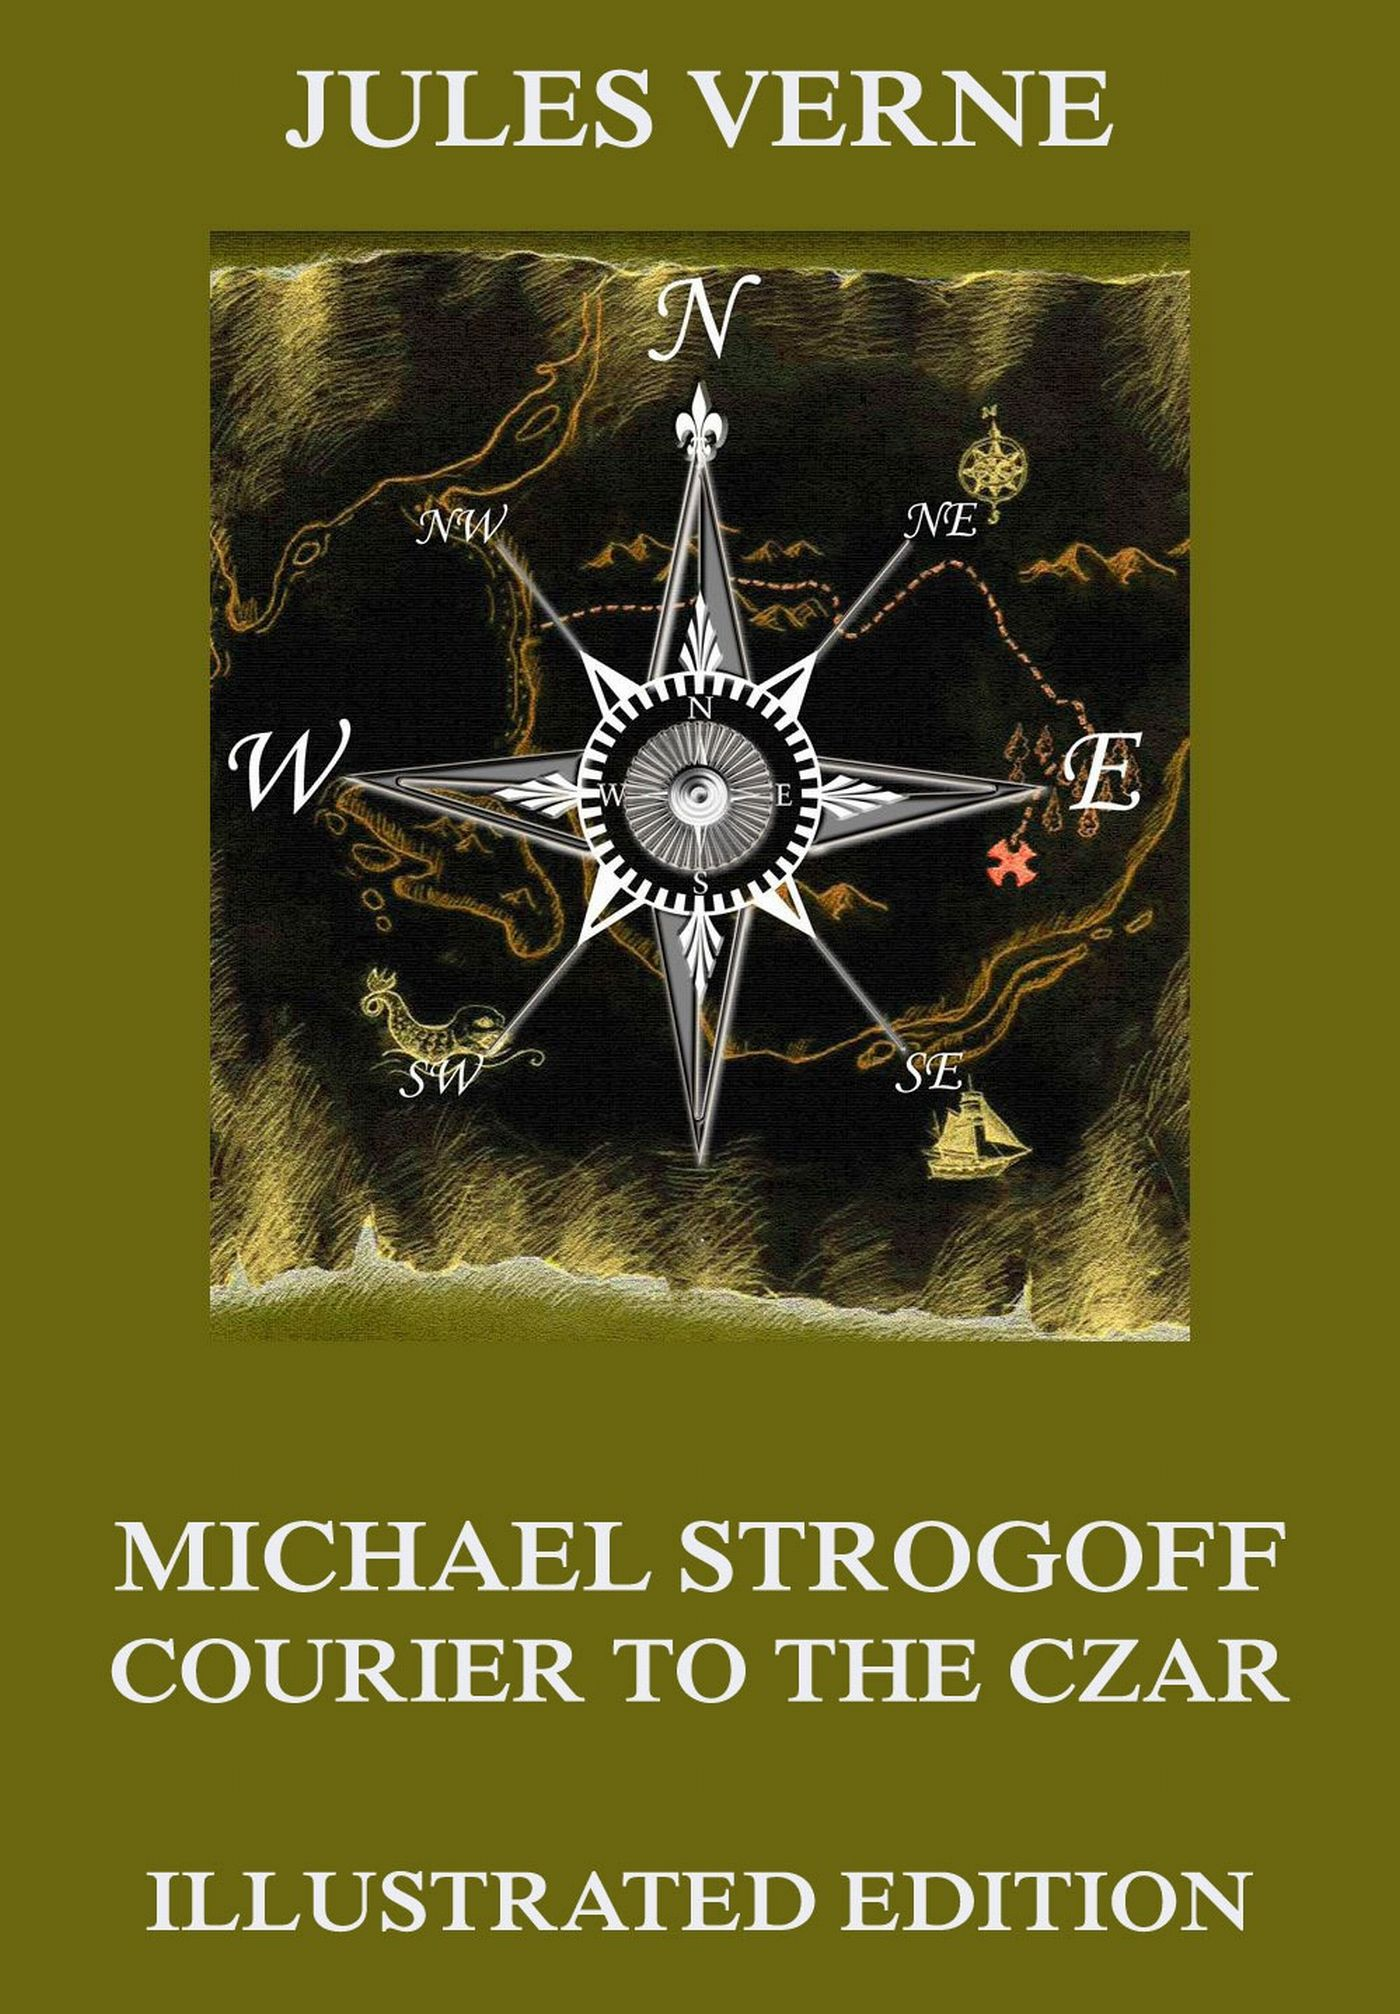 michael strogoff courier to the czar